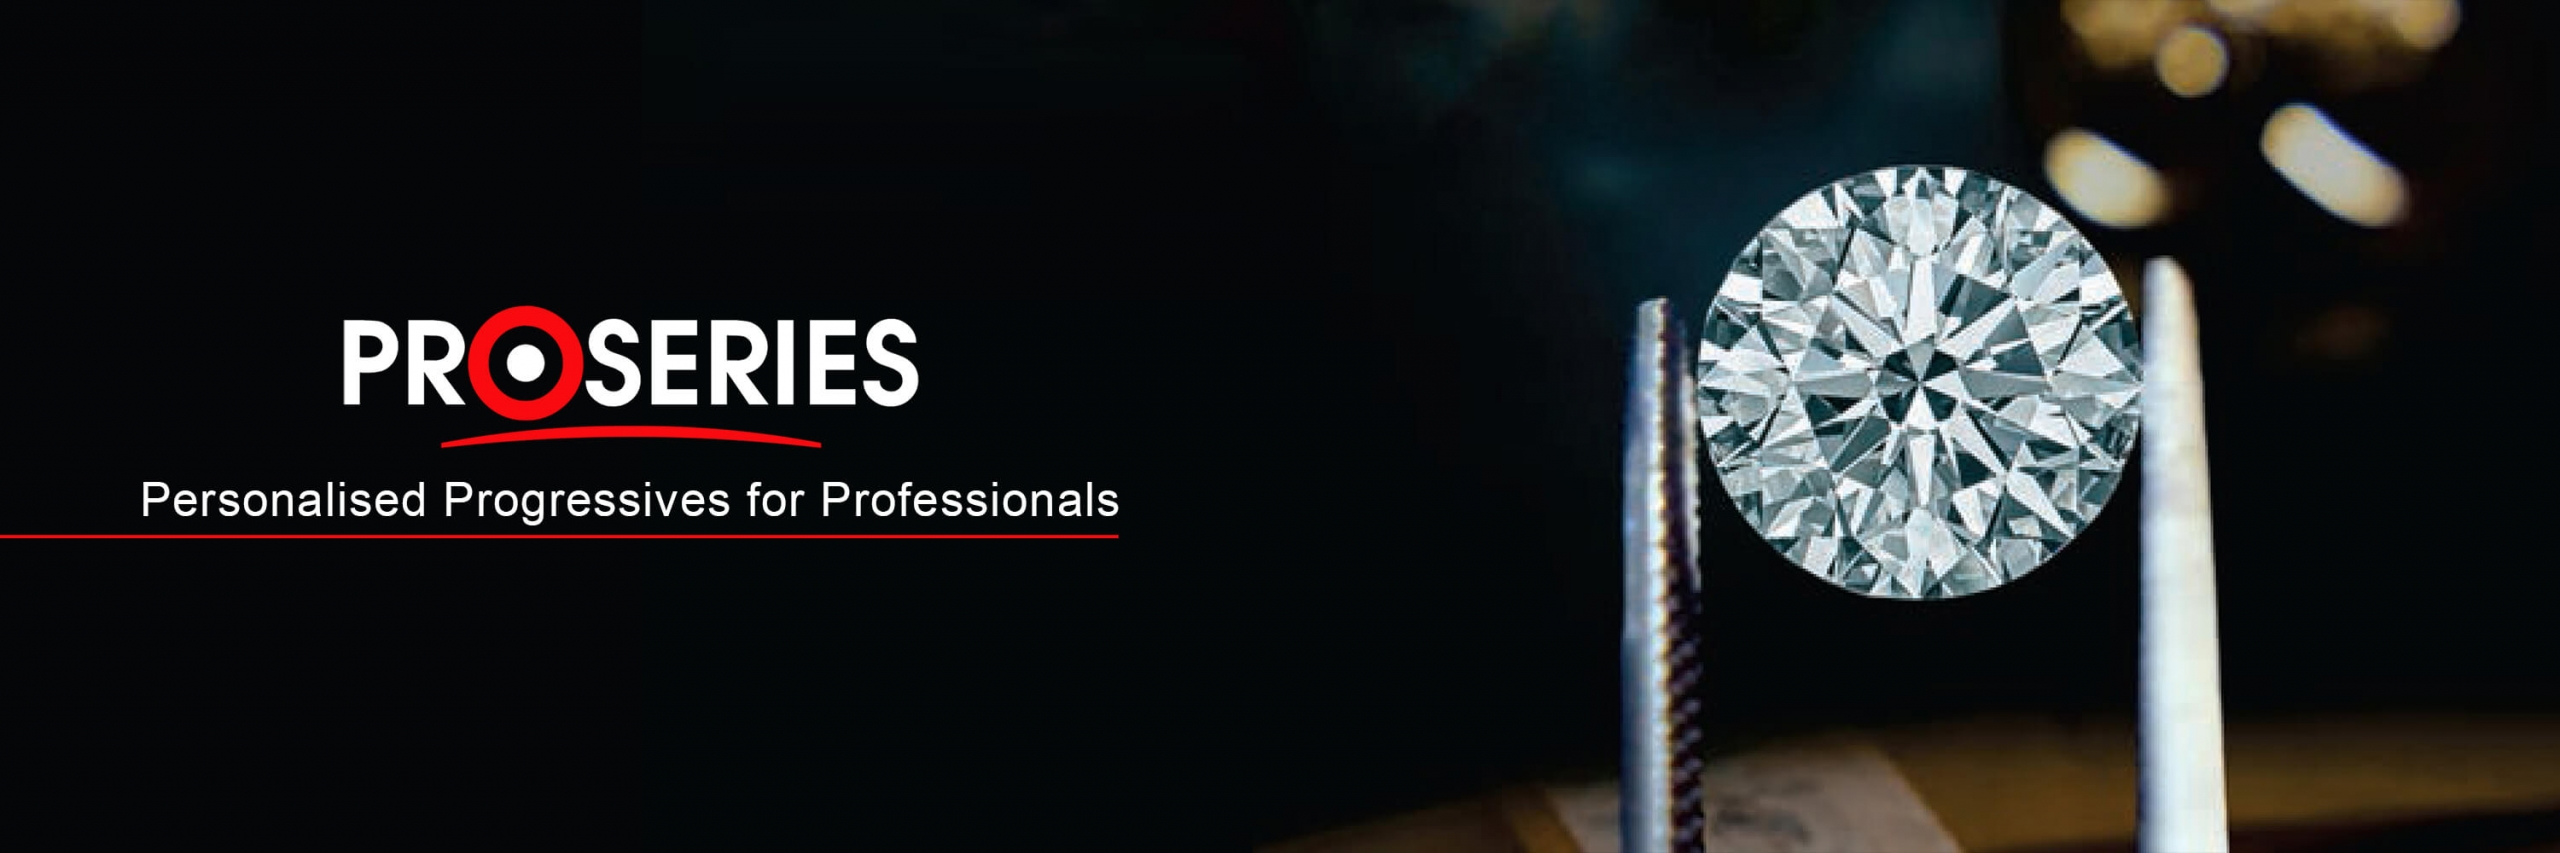 PROSERIES Personalised Progressives for Professionals